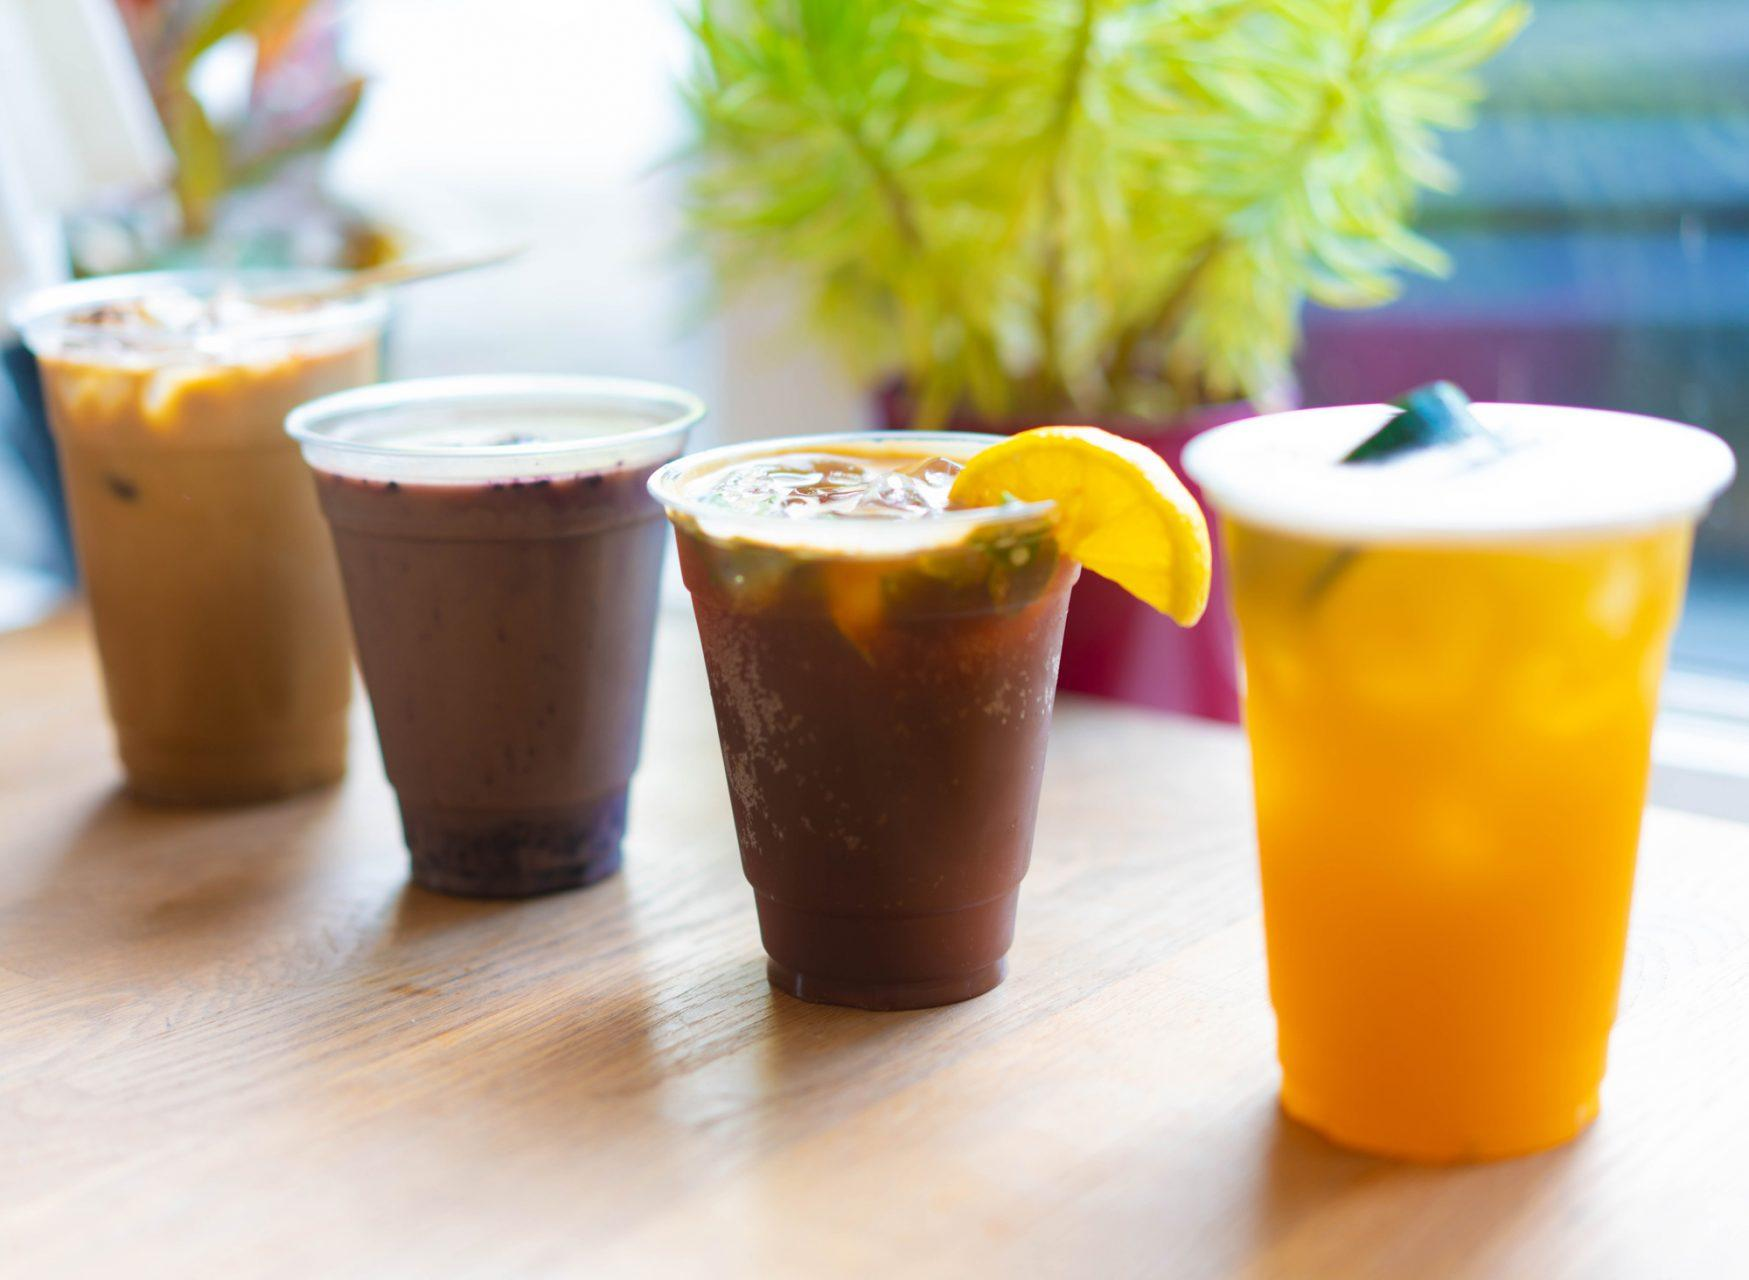 Lineup of Hatchet Coffee's four specialy drinks from their Summer Menu. From left to right is the Fireside, Blueberry Horchata, Camp Crush Coffee Soda and Porch Swing.